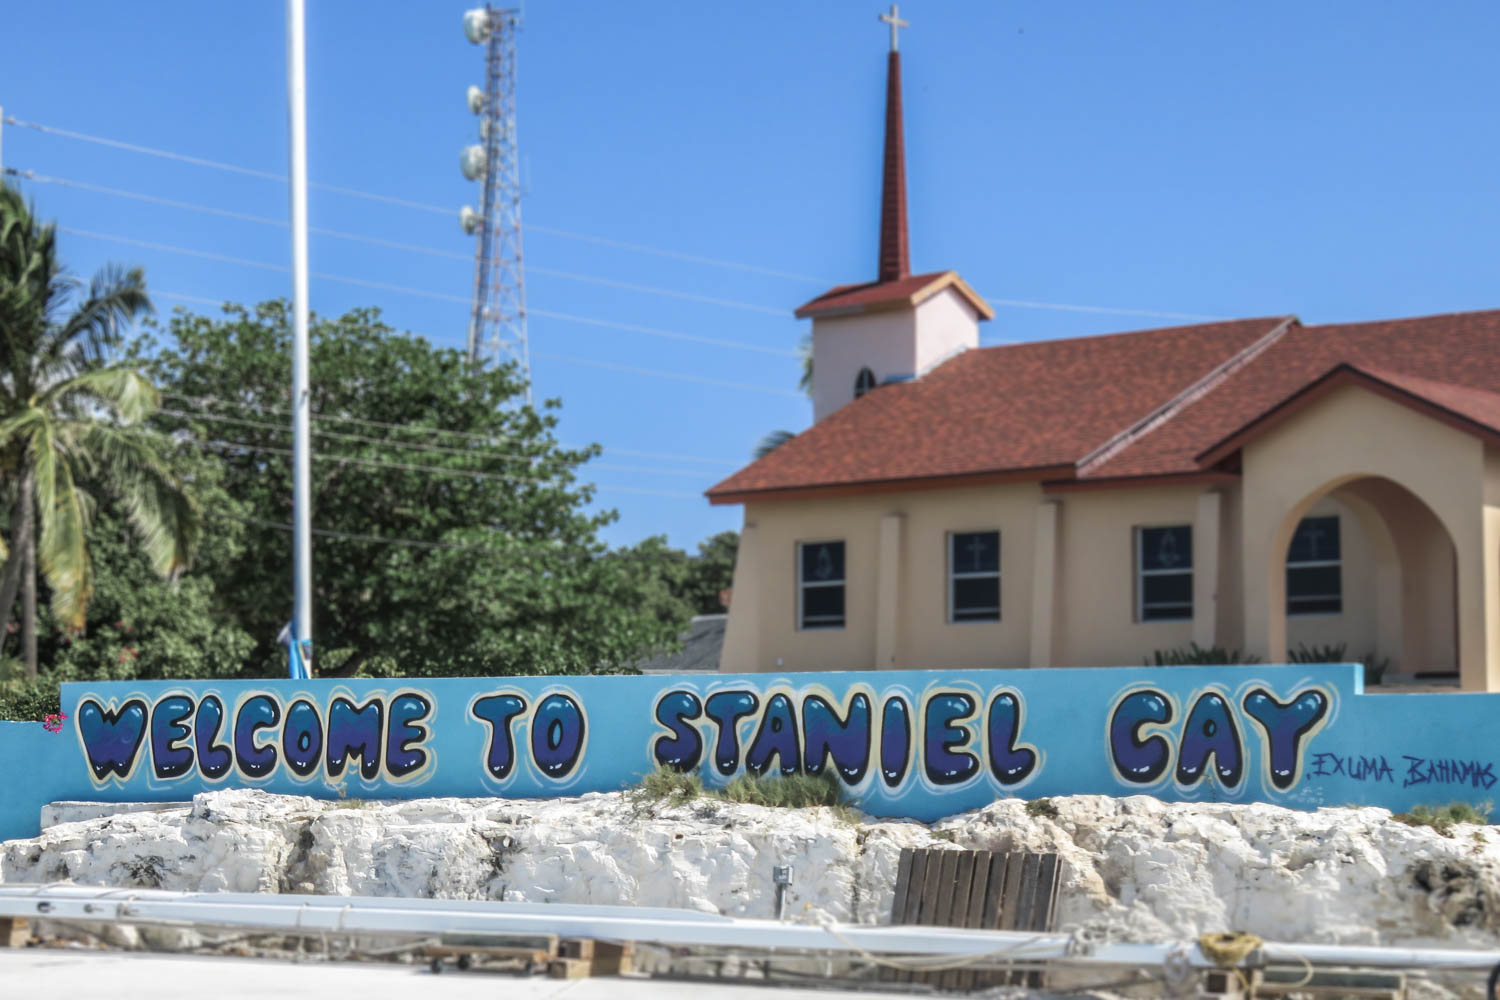 Staniel Cay Welcome sign at the Government Dock on Staniel Cay island in the Exuma Bahamas.